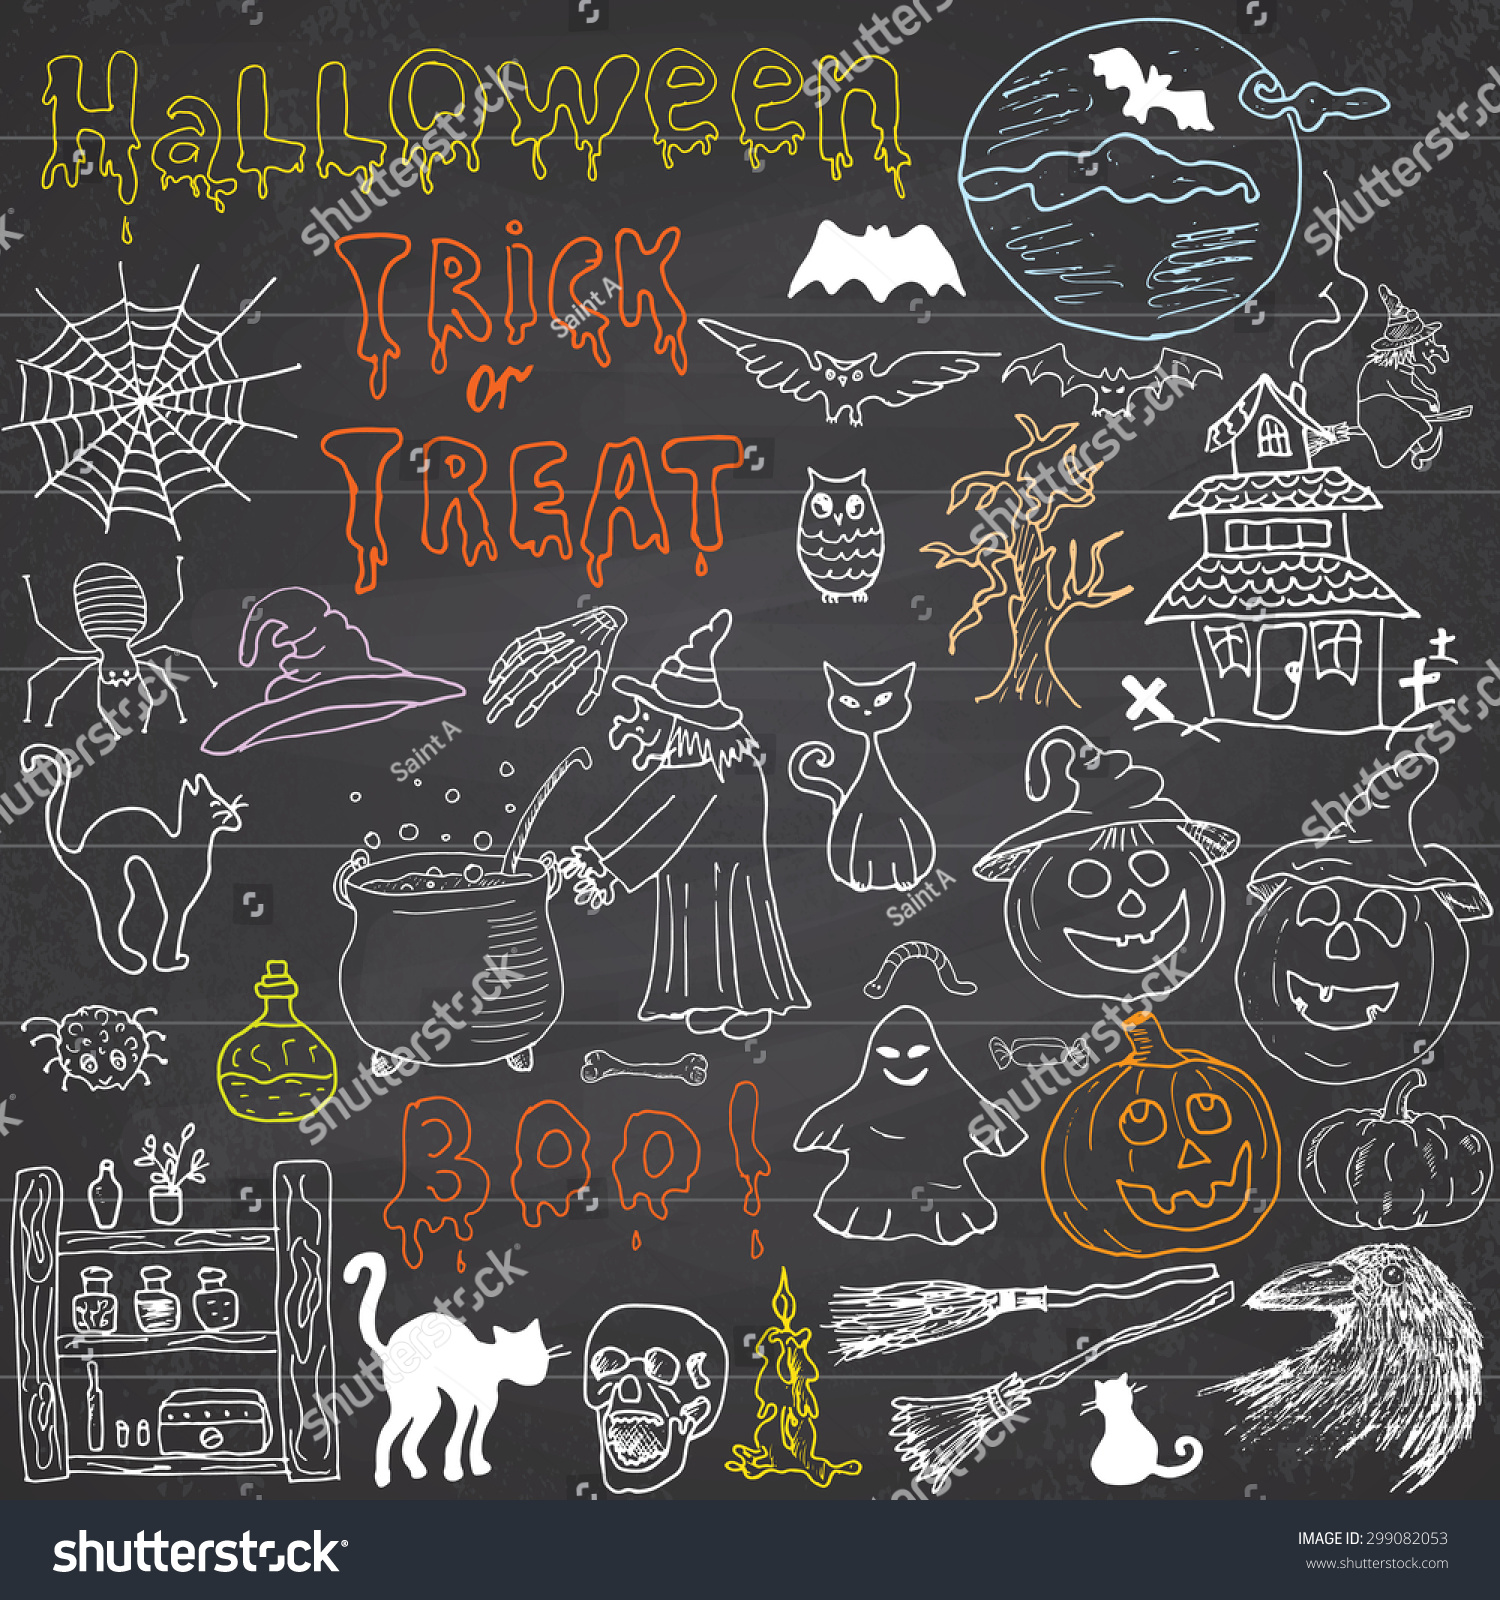 Sketch of halloween design elements with pumpkin witch black cat ghost skull bats spiders with web Doodles set with Lettering Hand-Drawn Vector Illustration on chalkboard background